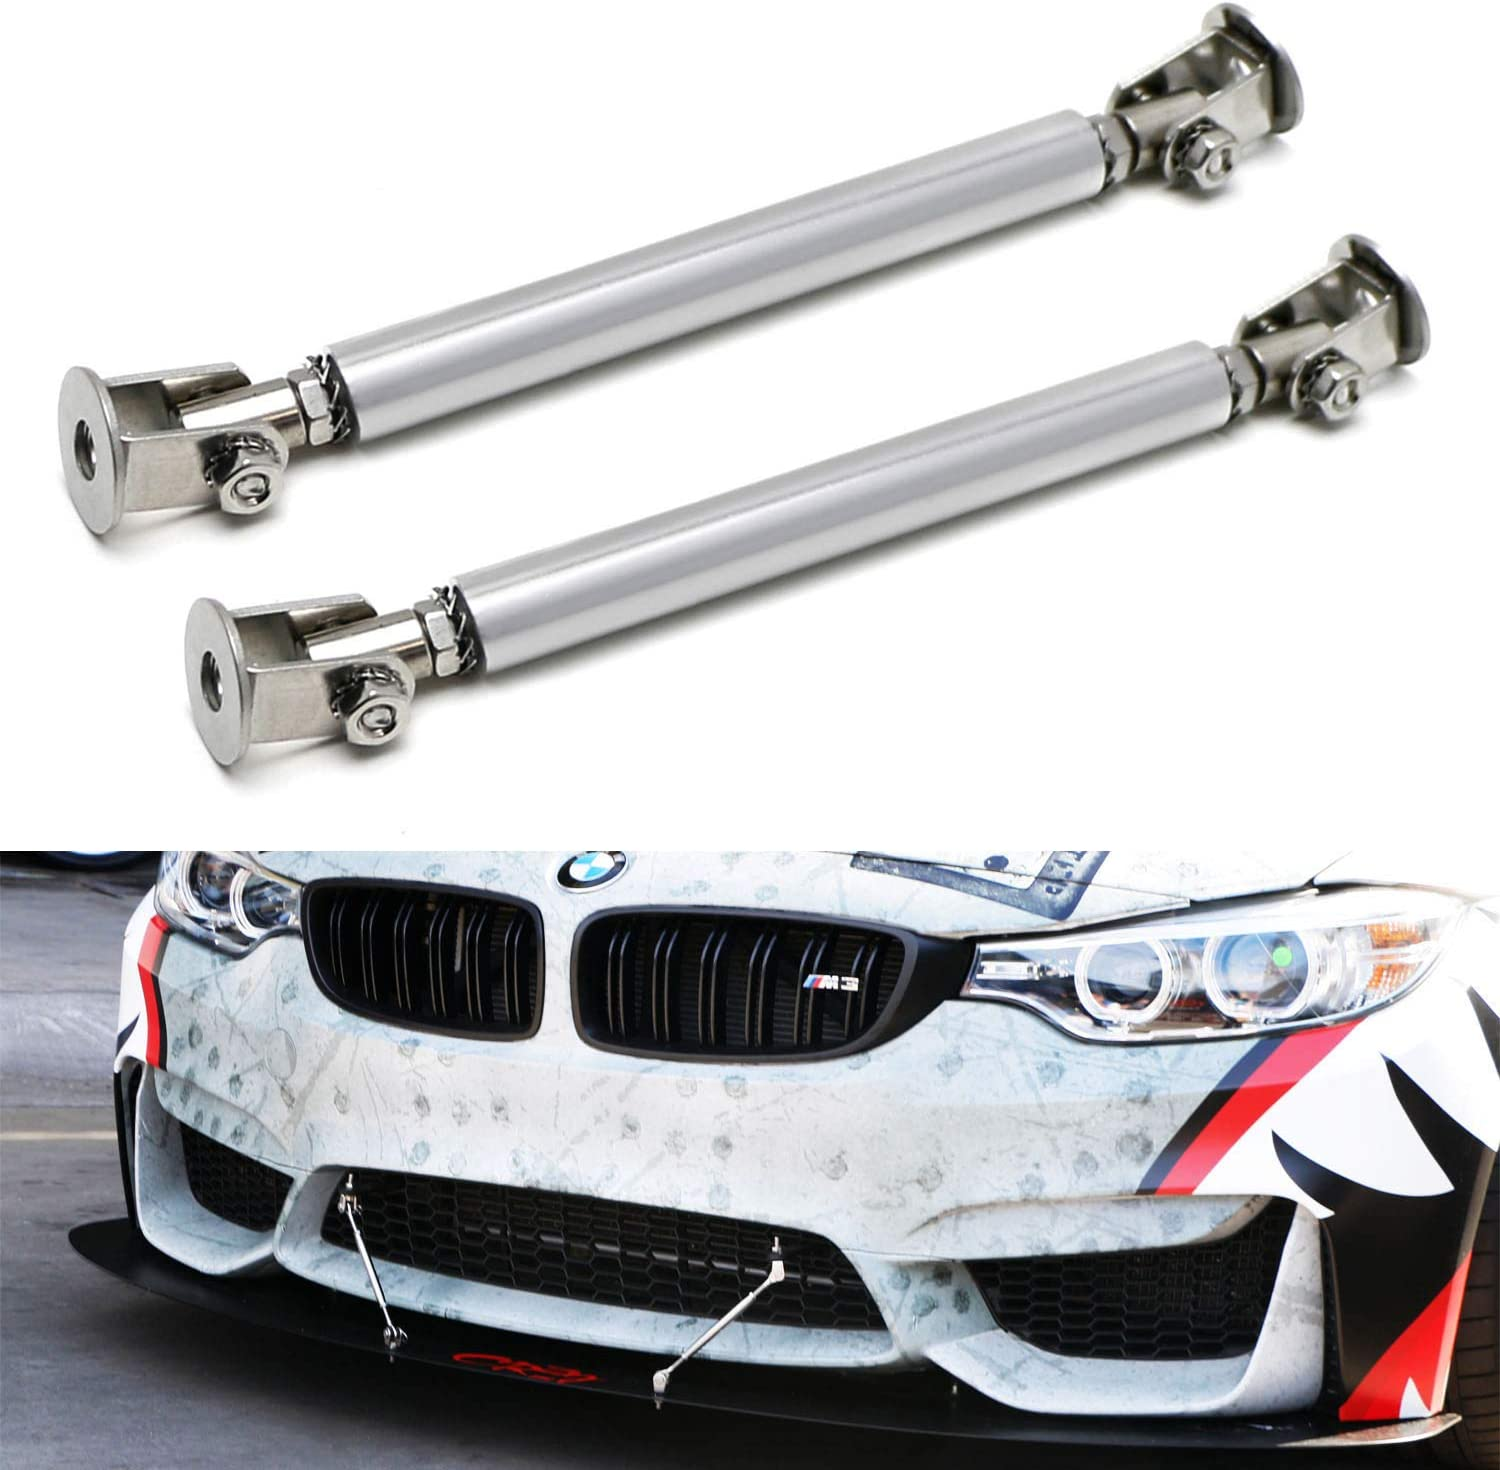 iJDMTOY Universal Fit Silver Finish Discount mail order Bumper Splitter Front Rapid rise Lip St